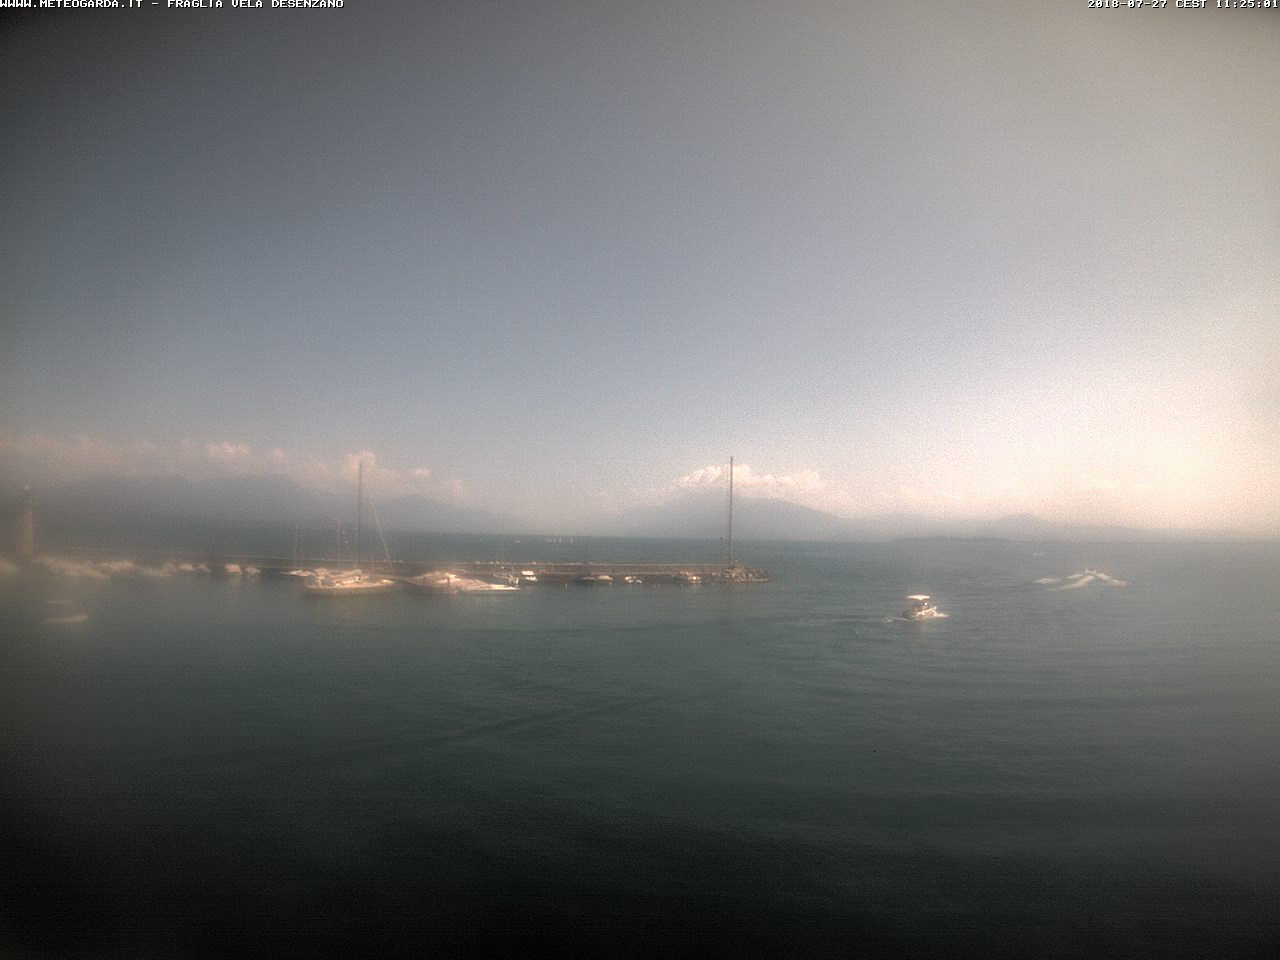 Webcam Desenzano del Garda